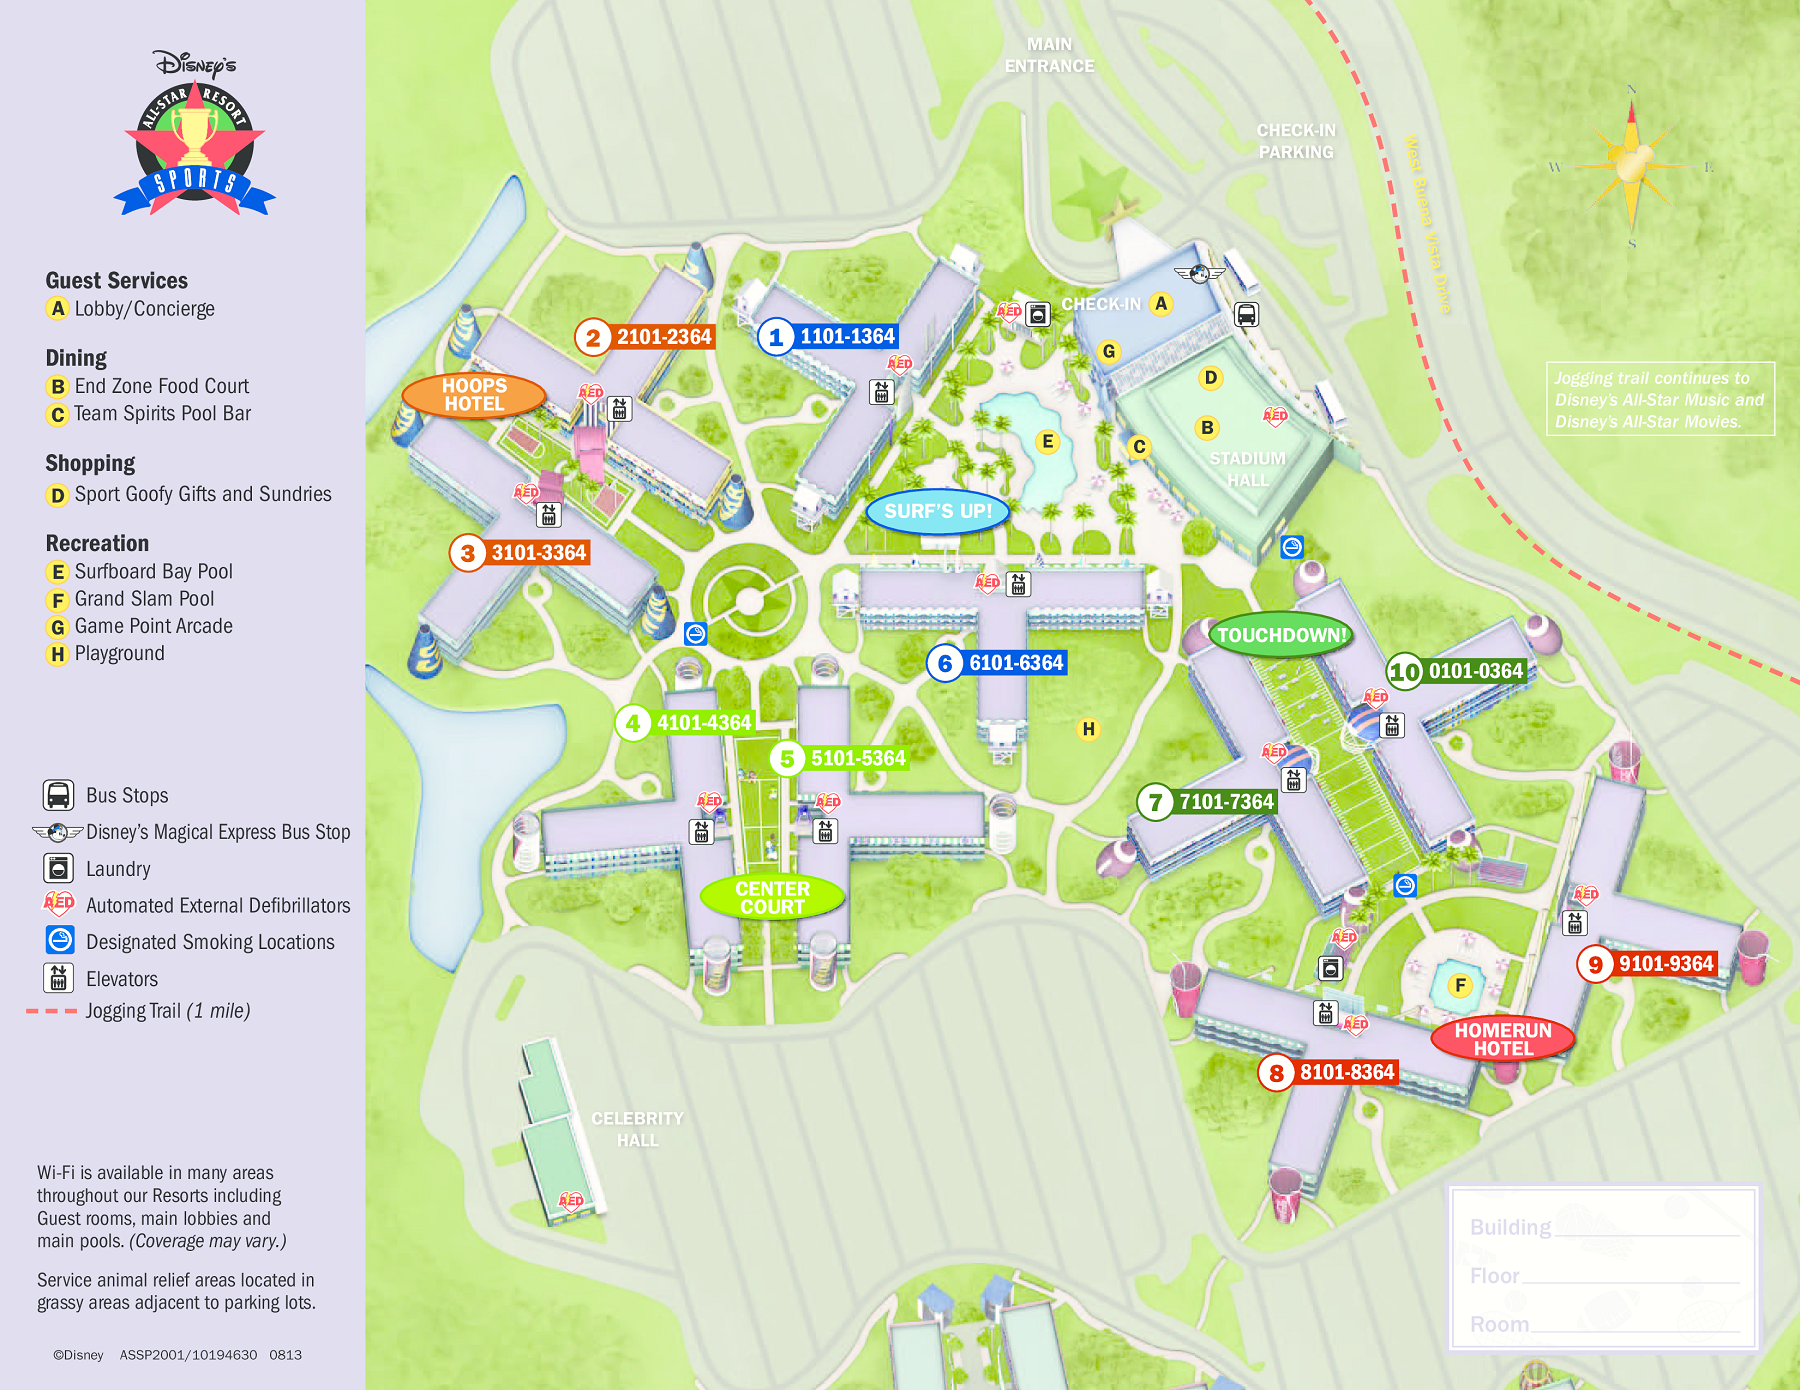 Map Of All Disney Hotels Pictures to Pin on Pinterest - PinsDaddy